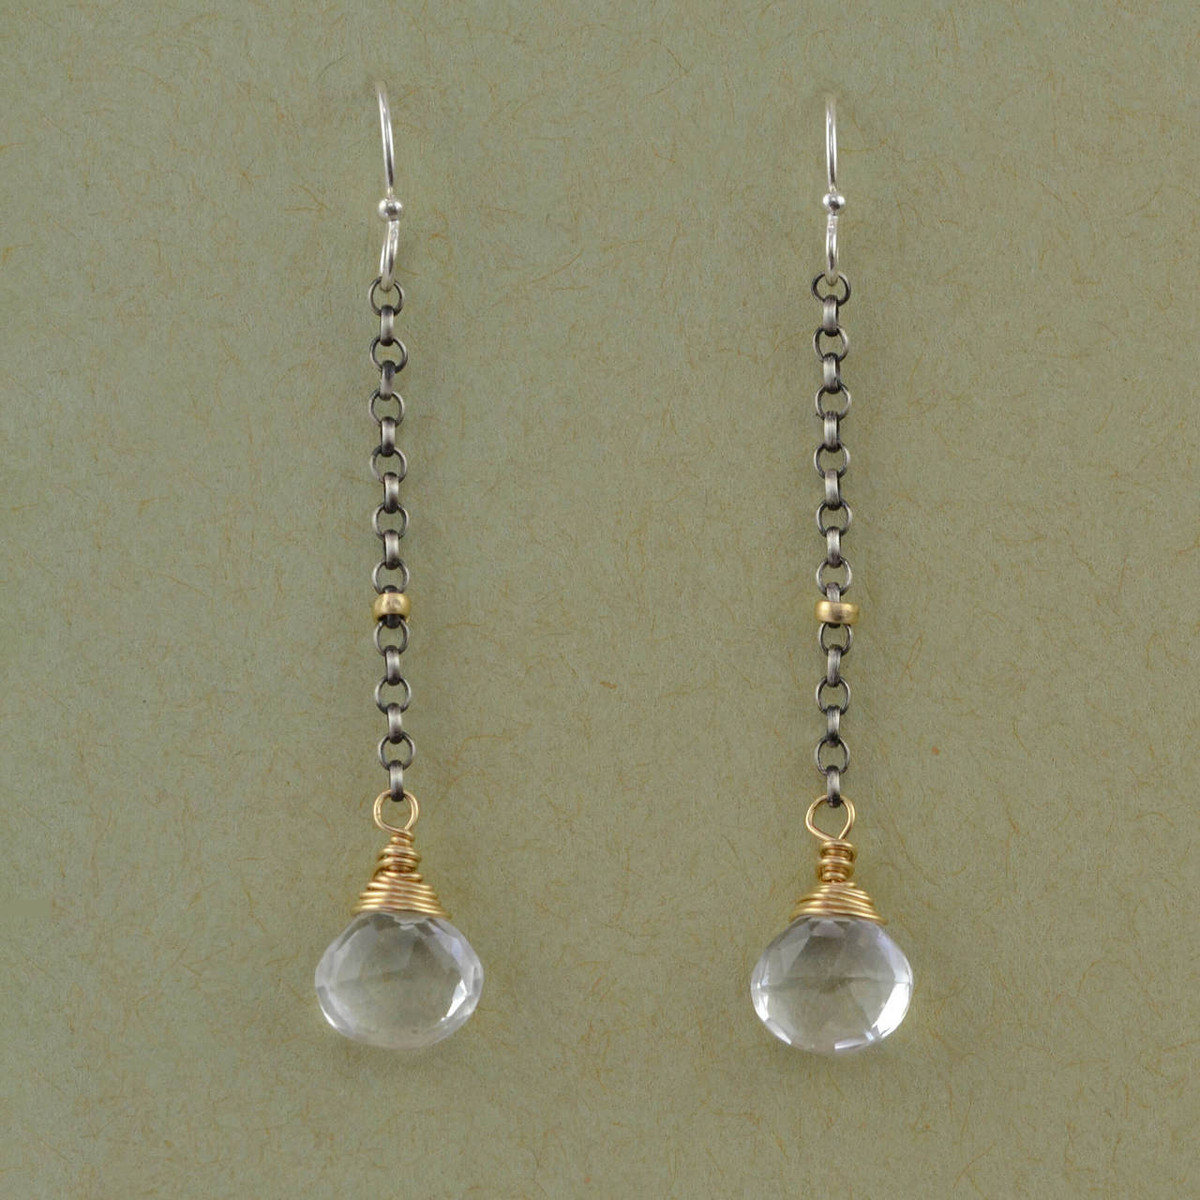 434f075d45e1a6 handmade dangle earrings with faceted crystal quartz: view 1